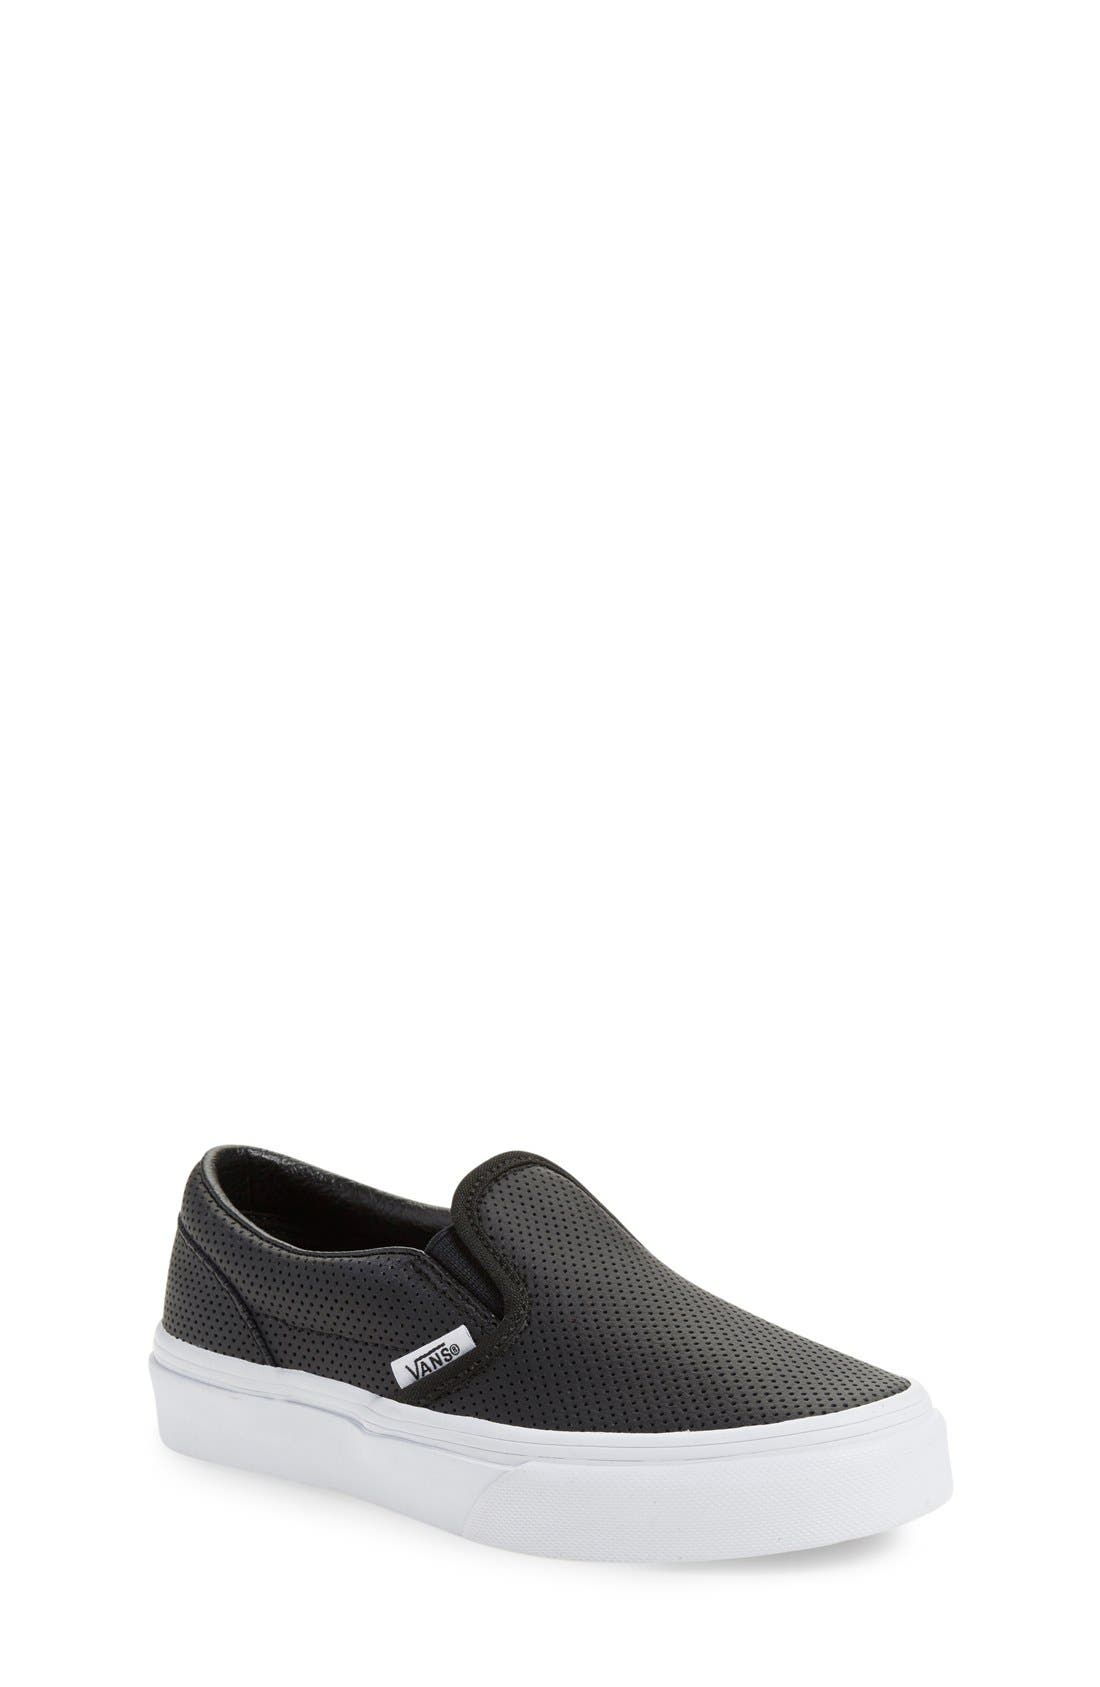 'Classic' Slip-On Sneaker,                         Main,                         color, Black Leather